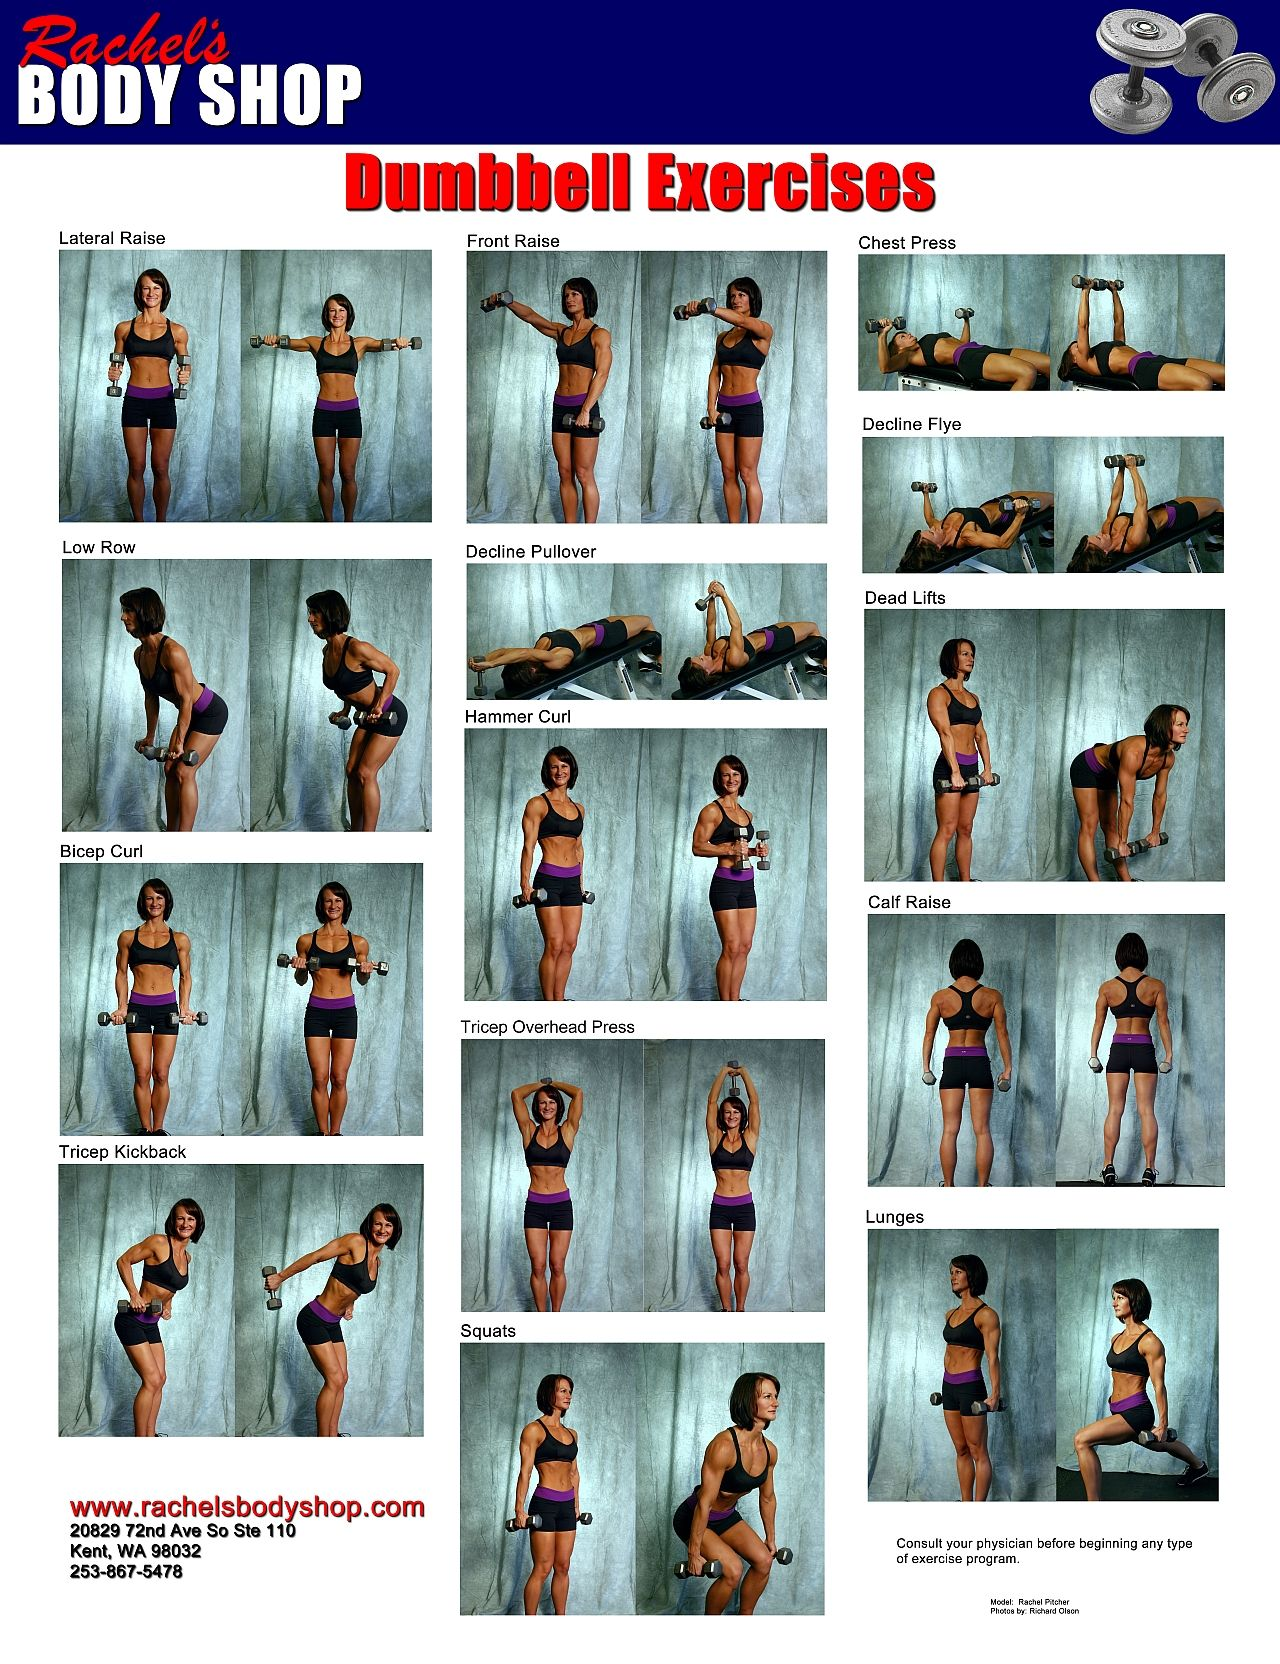 Torch Fat and Tone Up in 30 Minutes | Exercice bras ...